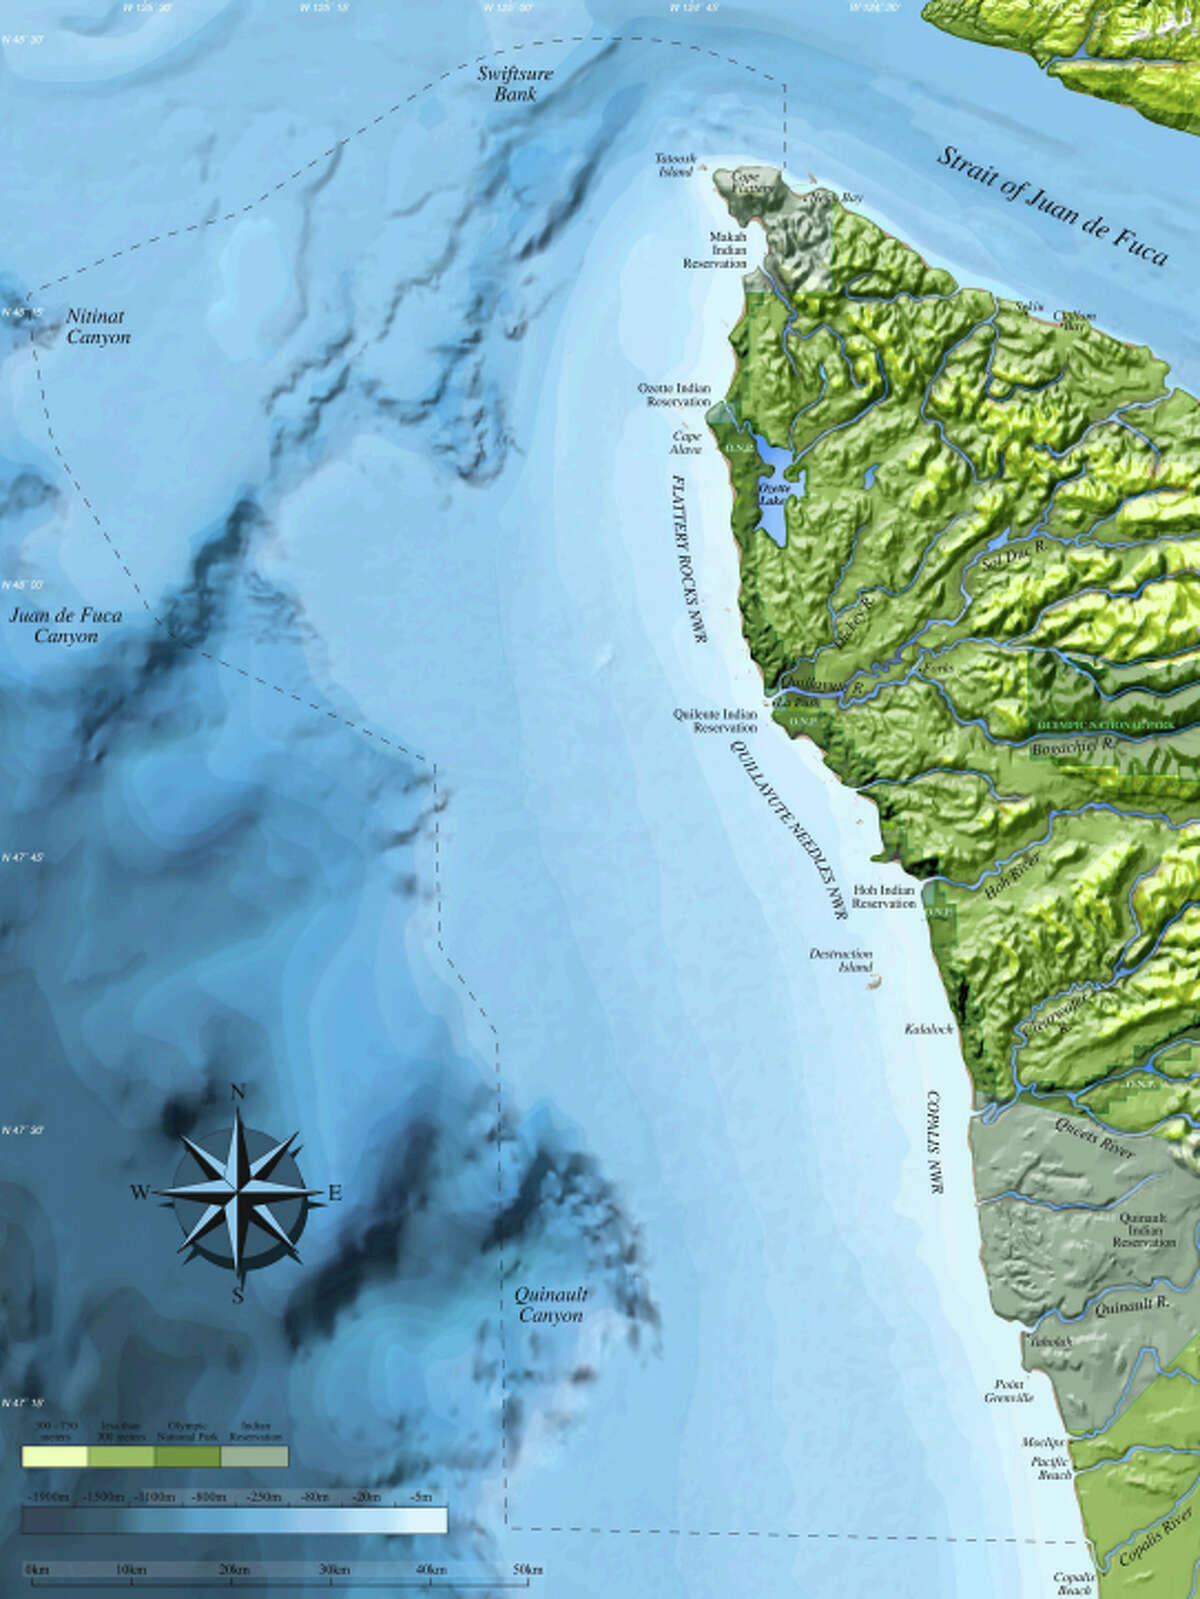 Olympic Coast National Marine Sanctuary, pictured in a National Oceanic and Atmospheric Administration map.